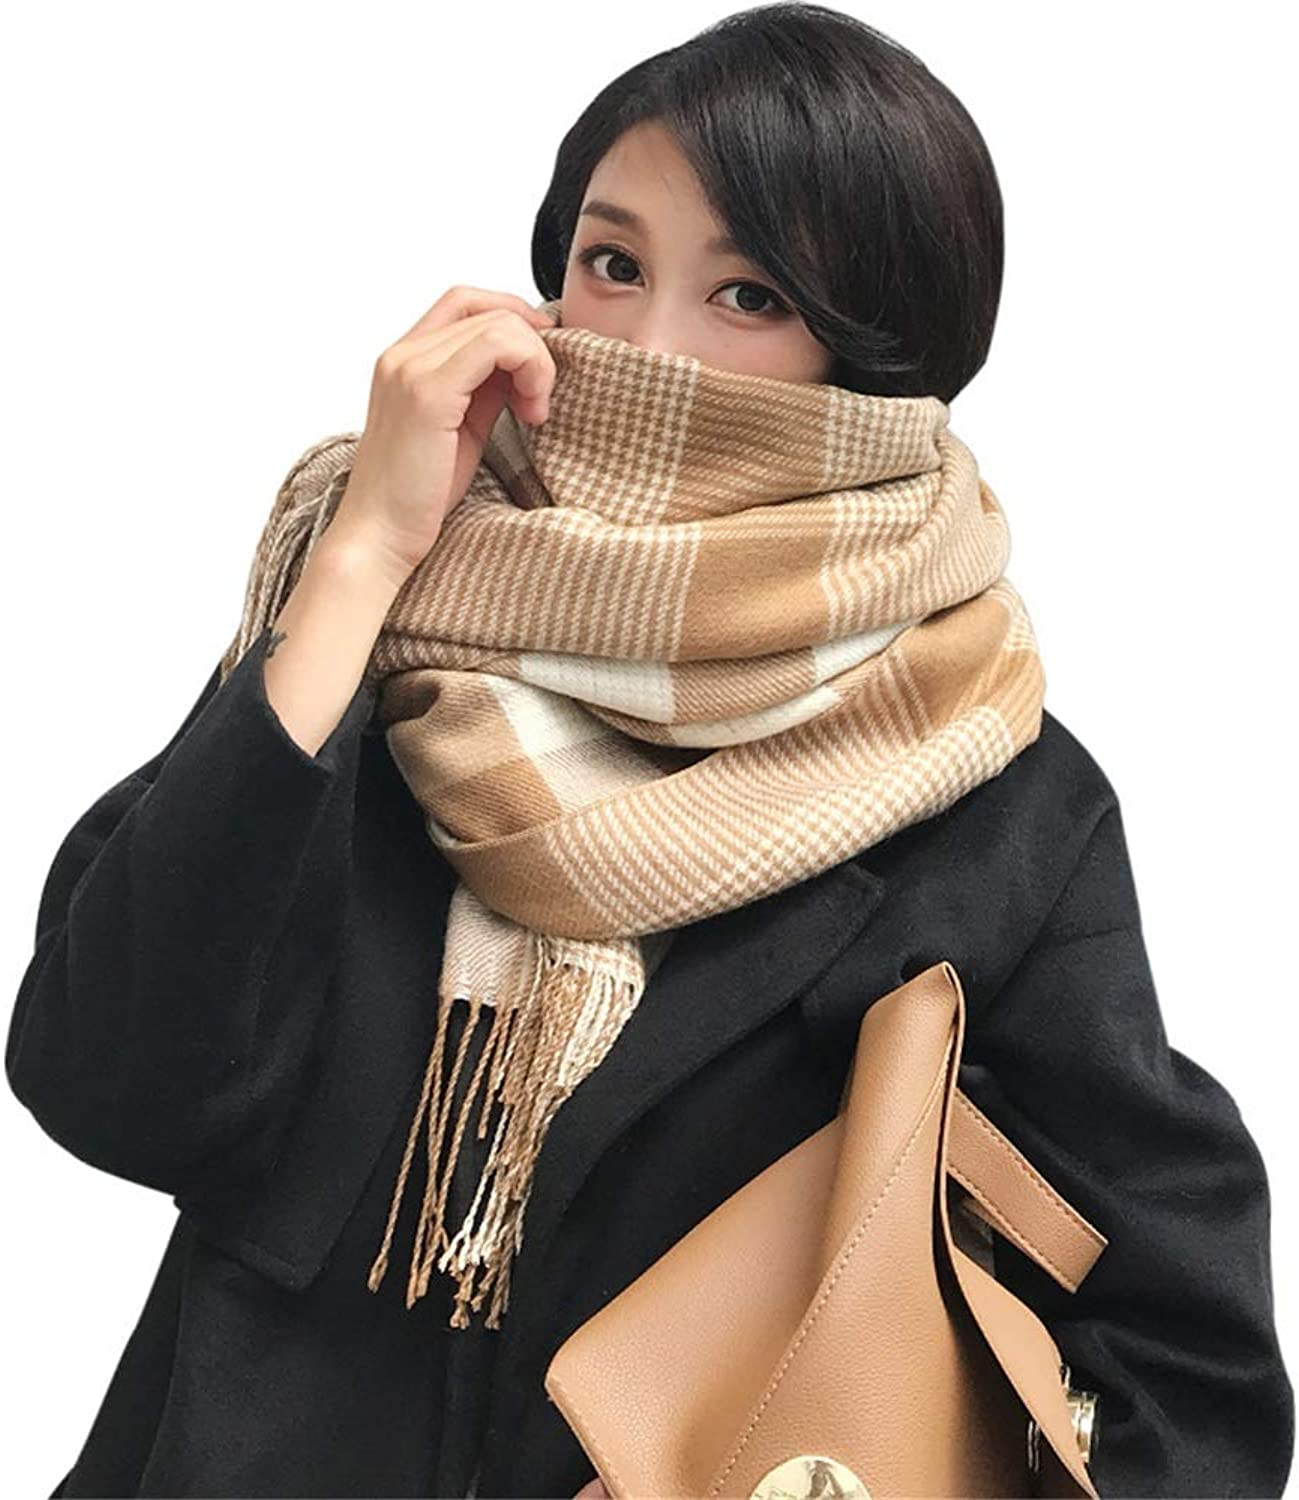 HATHOR23 Scarf Korean Plaid Scarf Female Winter Long Scarf Student Imitation Cashmere Wild Scarf Shawl Couple Thick Scarf (color   Beige)